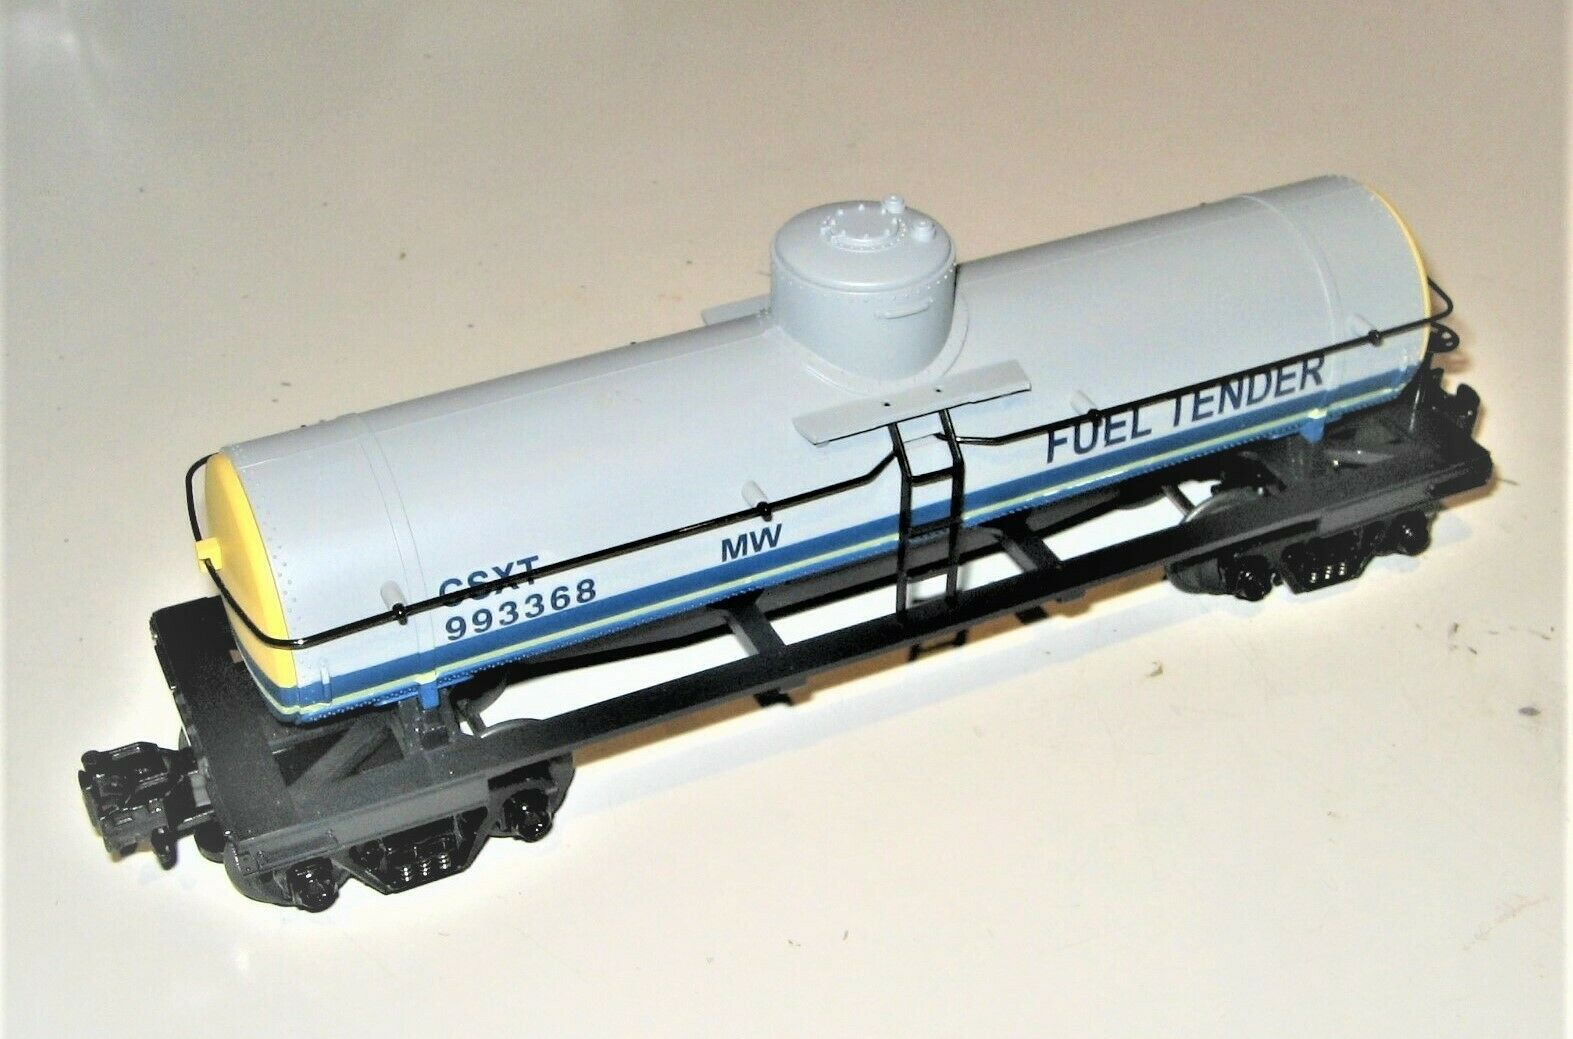 MTH CSXT Fuel Tender 993368 Tank auto Prossootype 027O Scale Mint nuovo